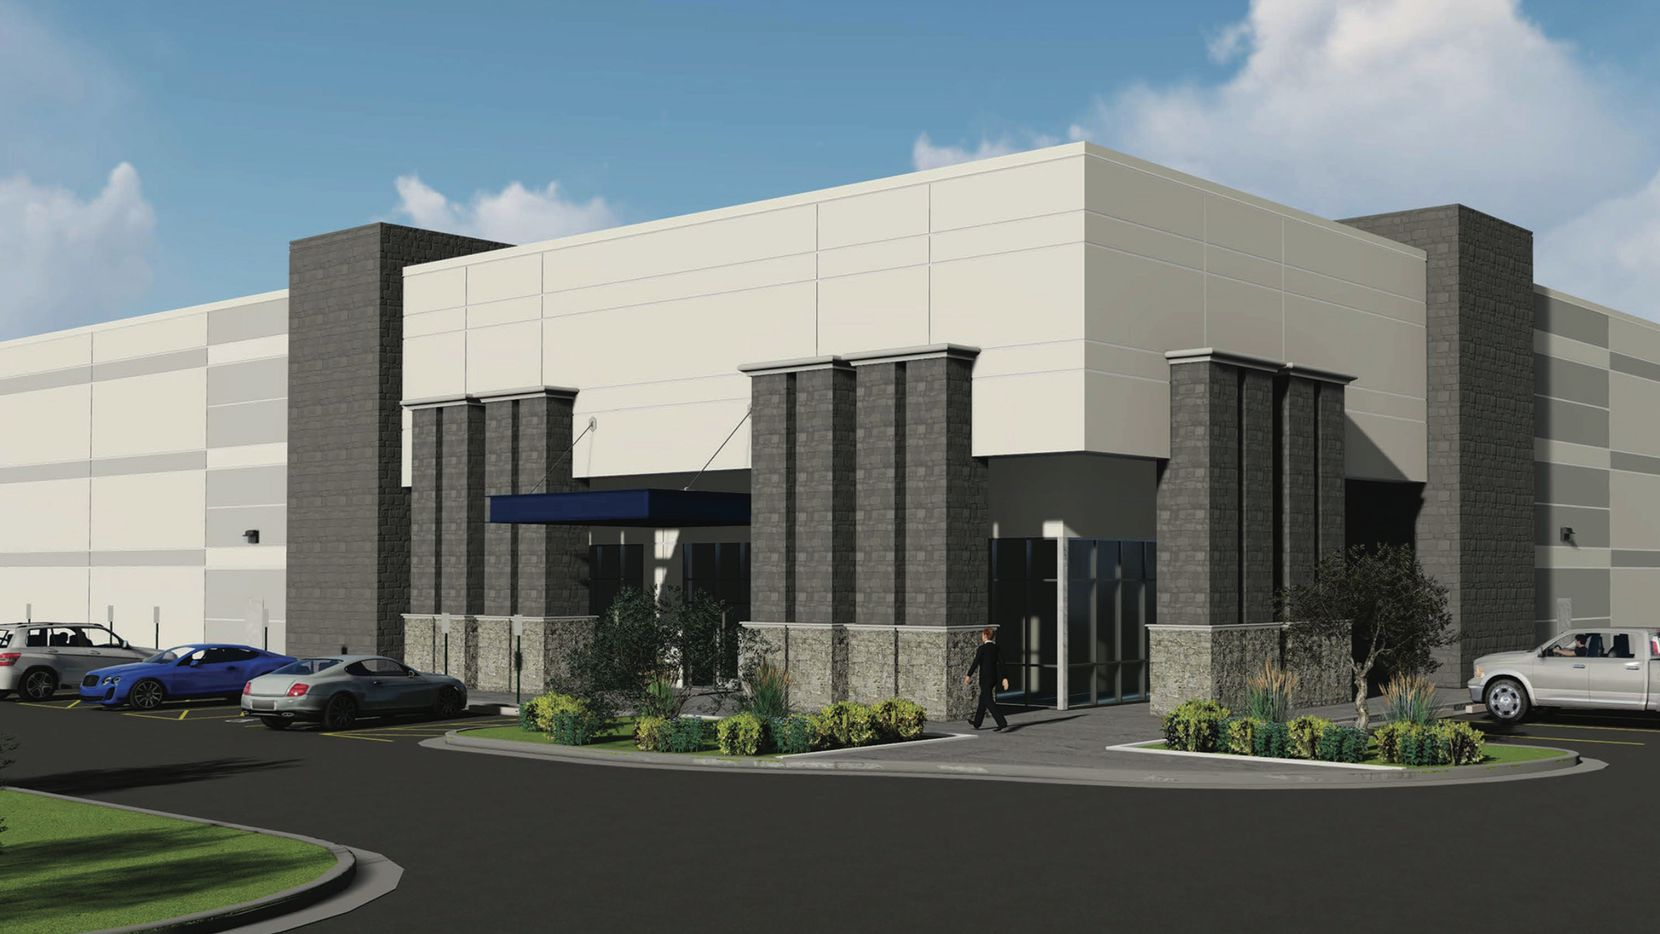 Steelcase has leased two buildings in the Valwood Crossroads business park in Carrollton.